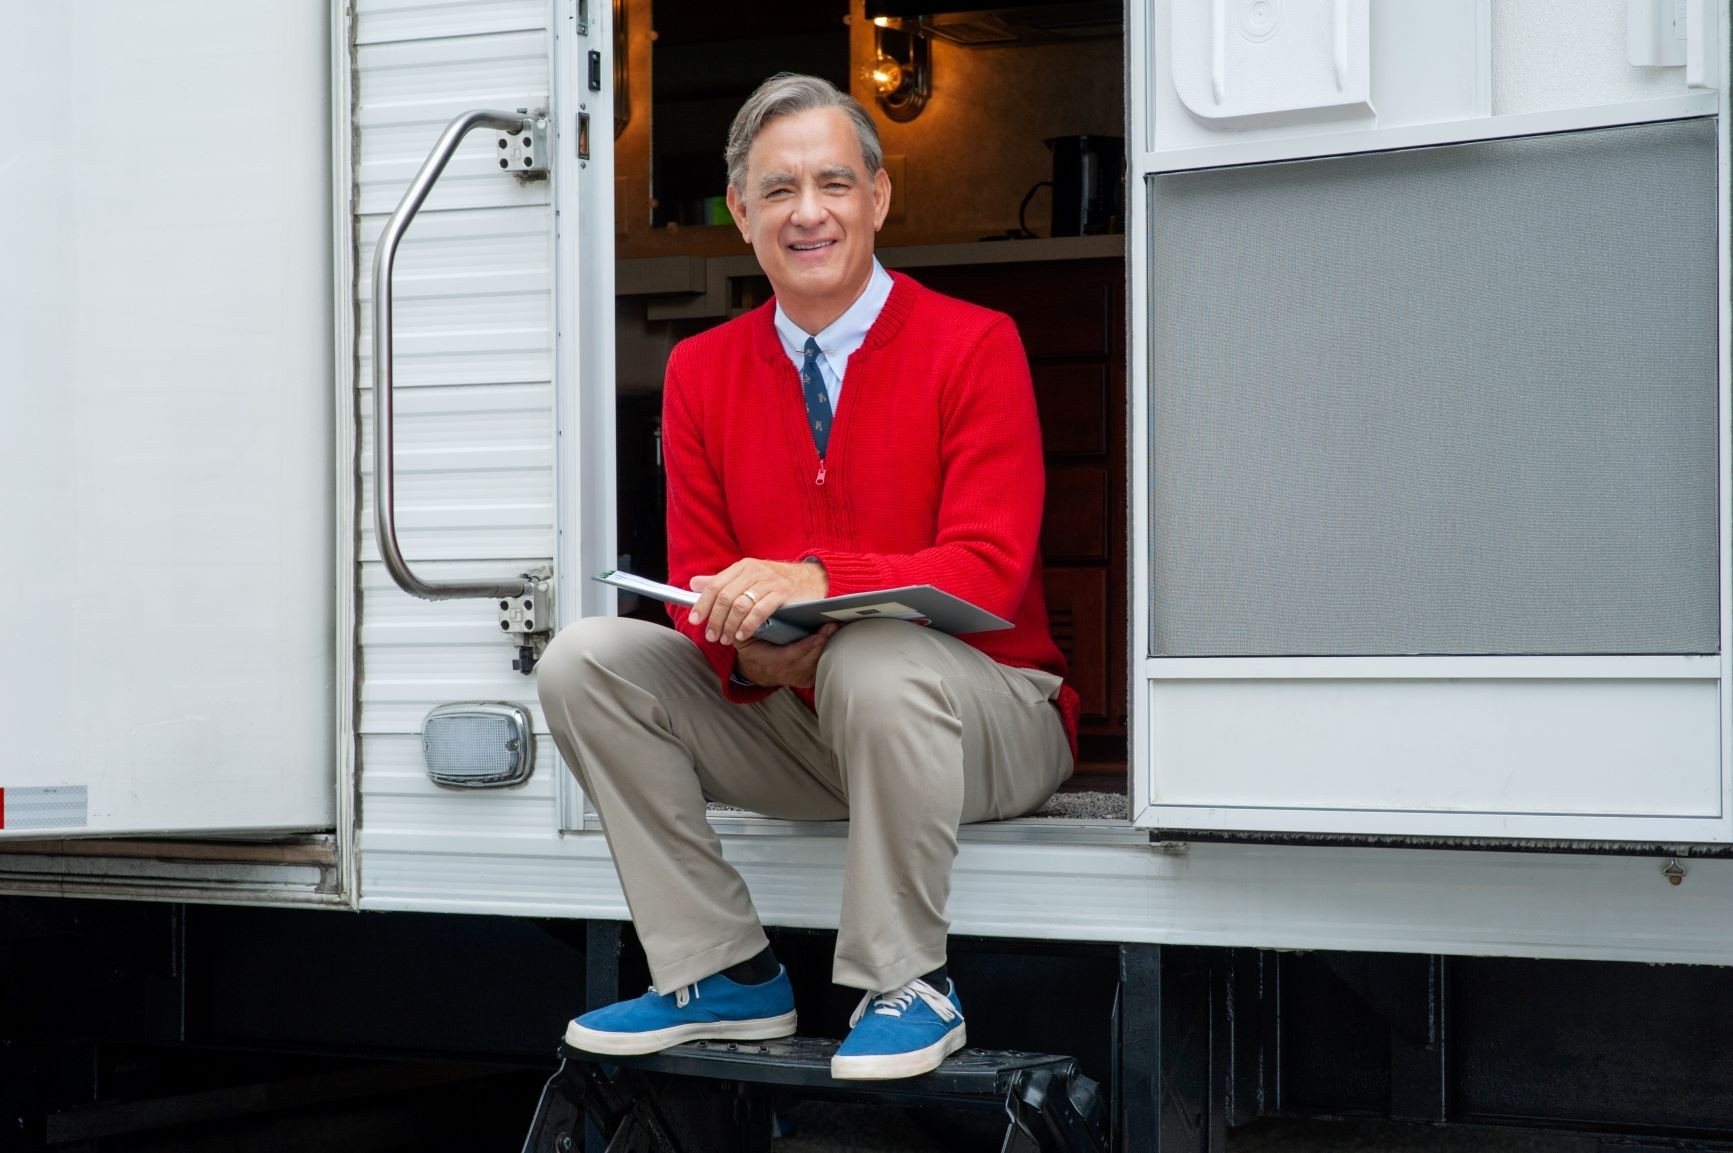 Tom Hanks as Mr Rogers in A Beautiful Day in the Neighborhood